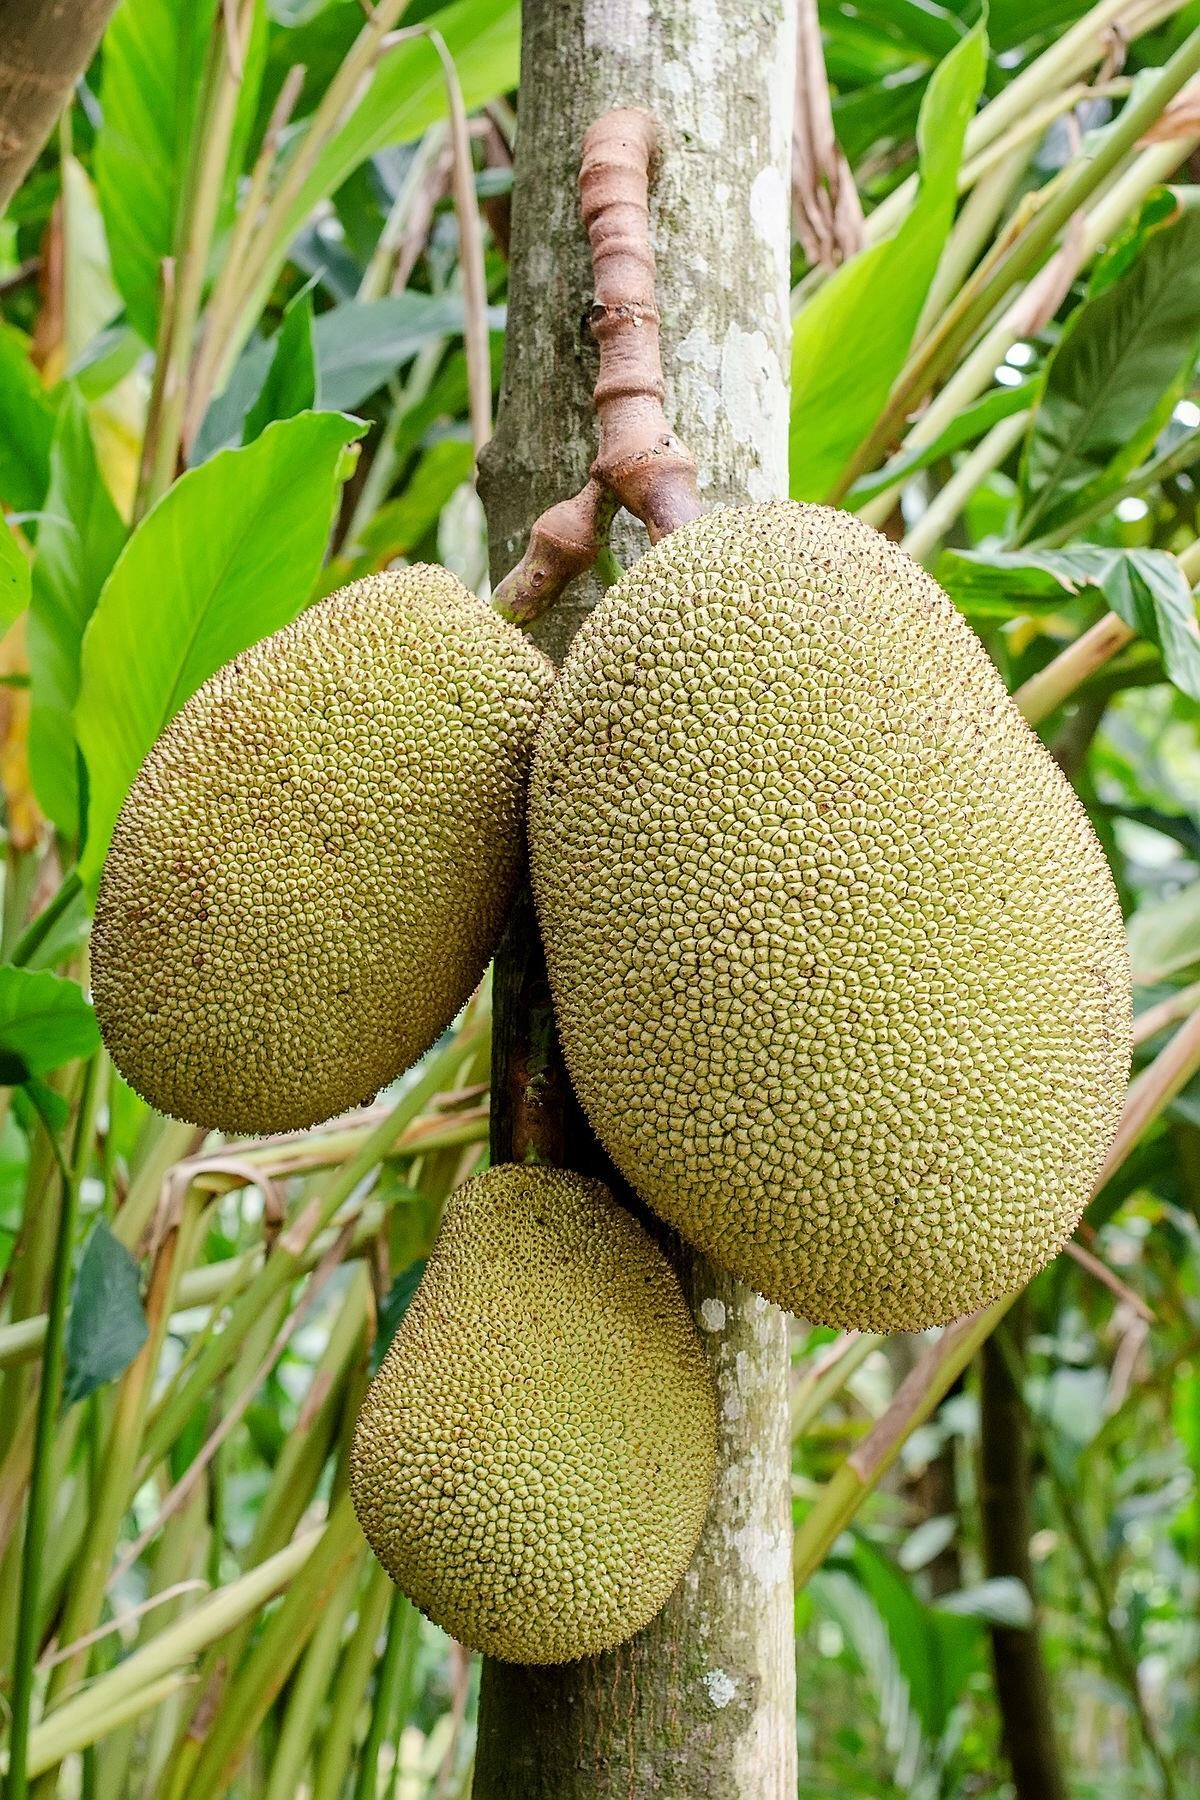 I Found This Jack Fruit In My Farm #